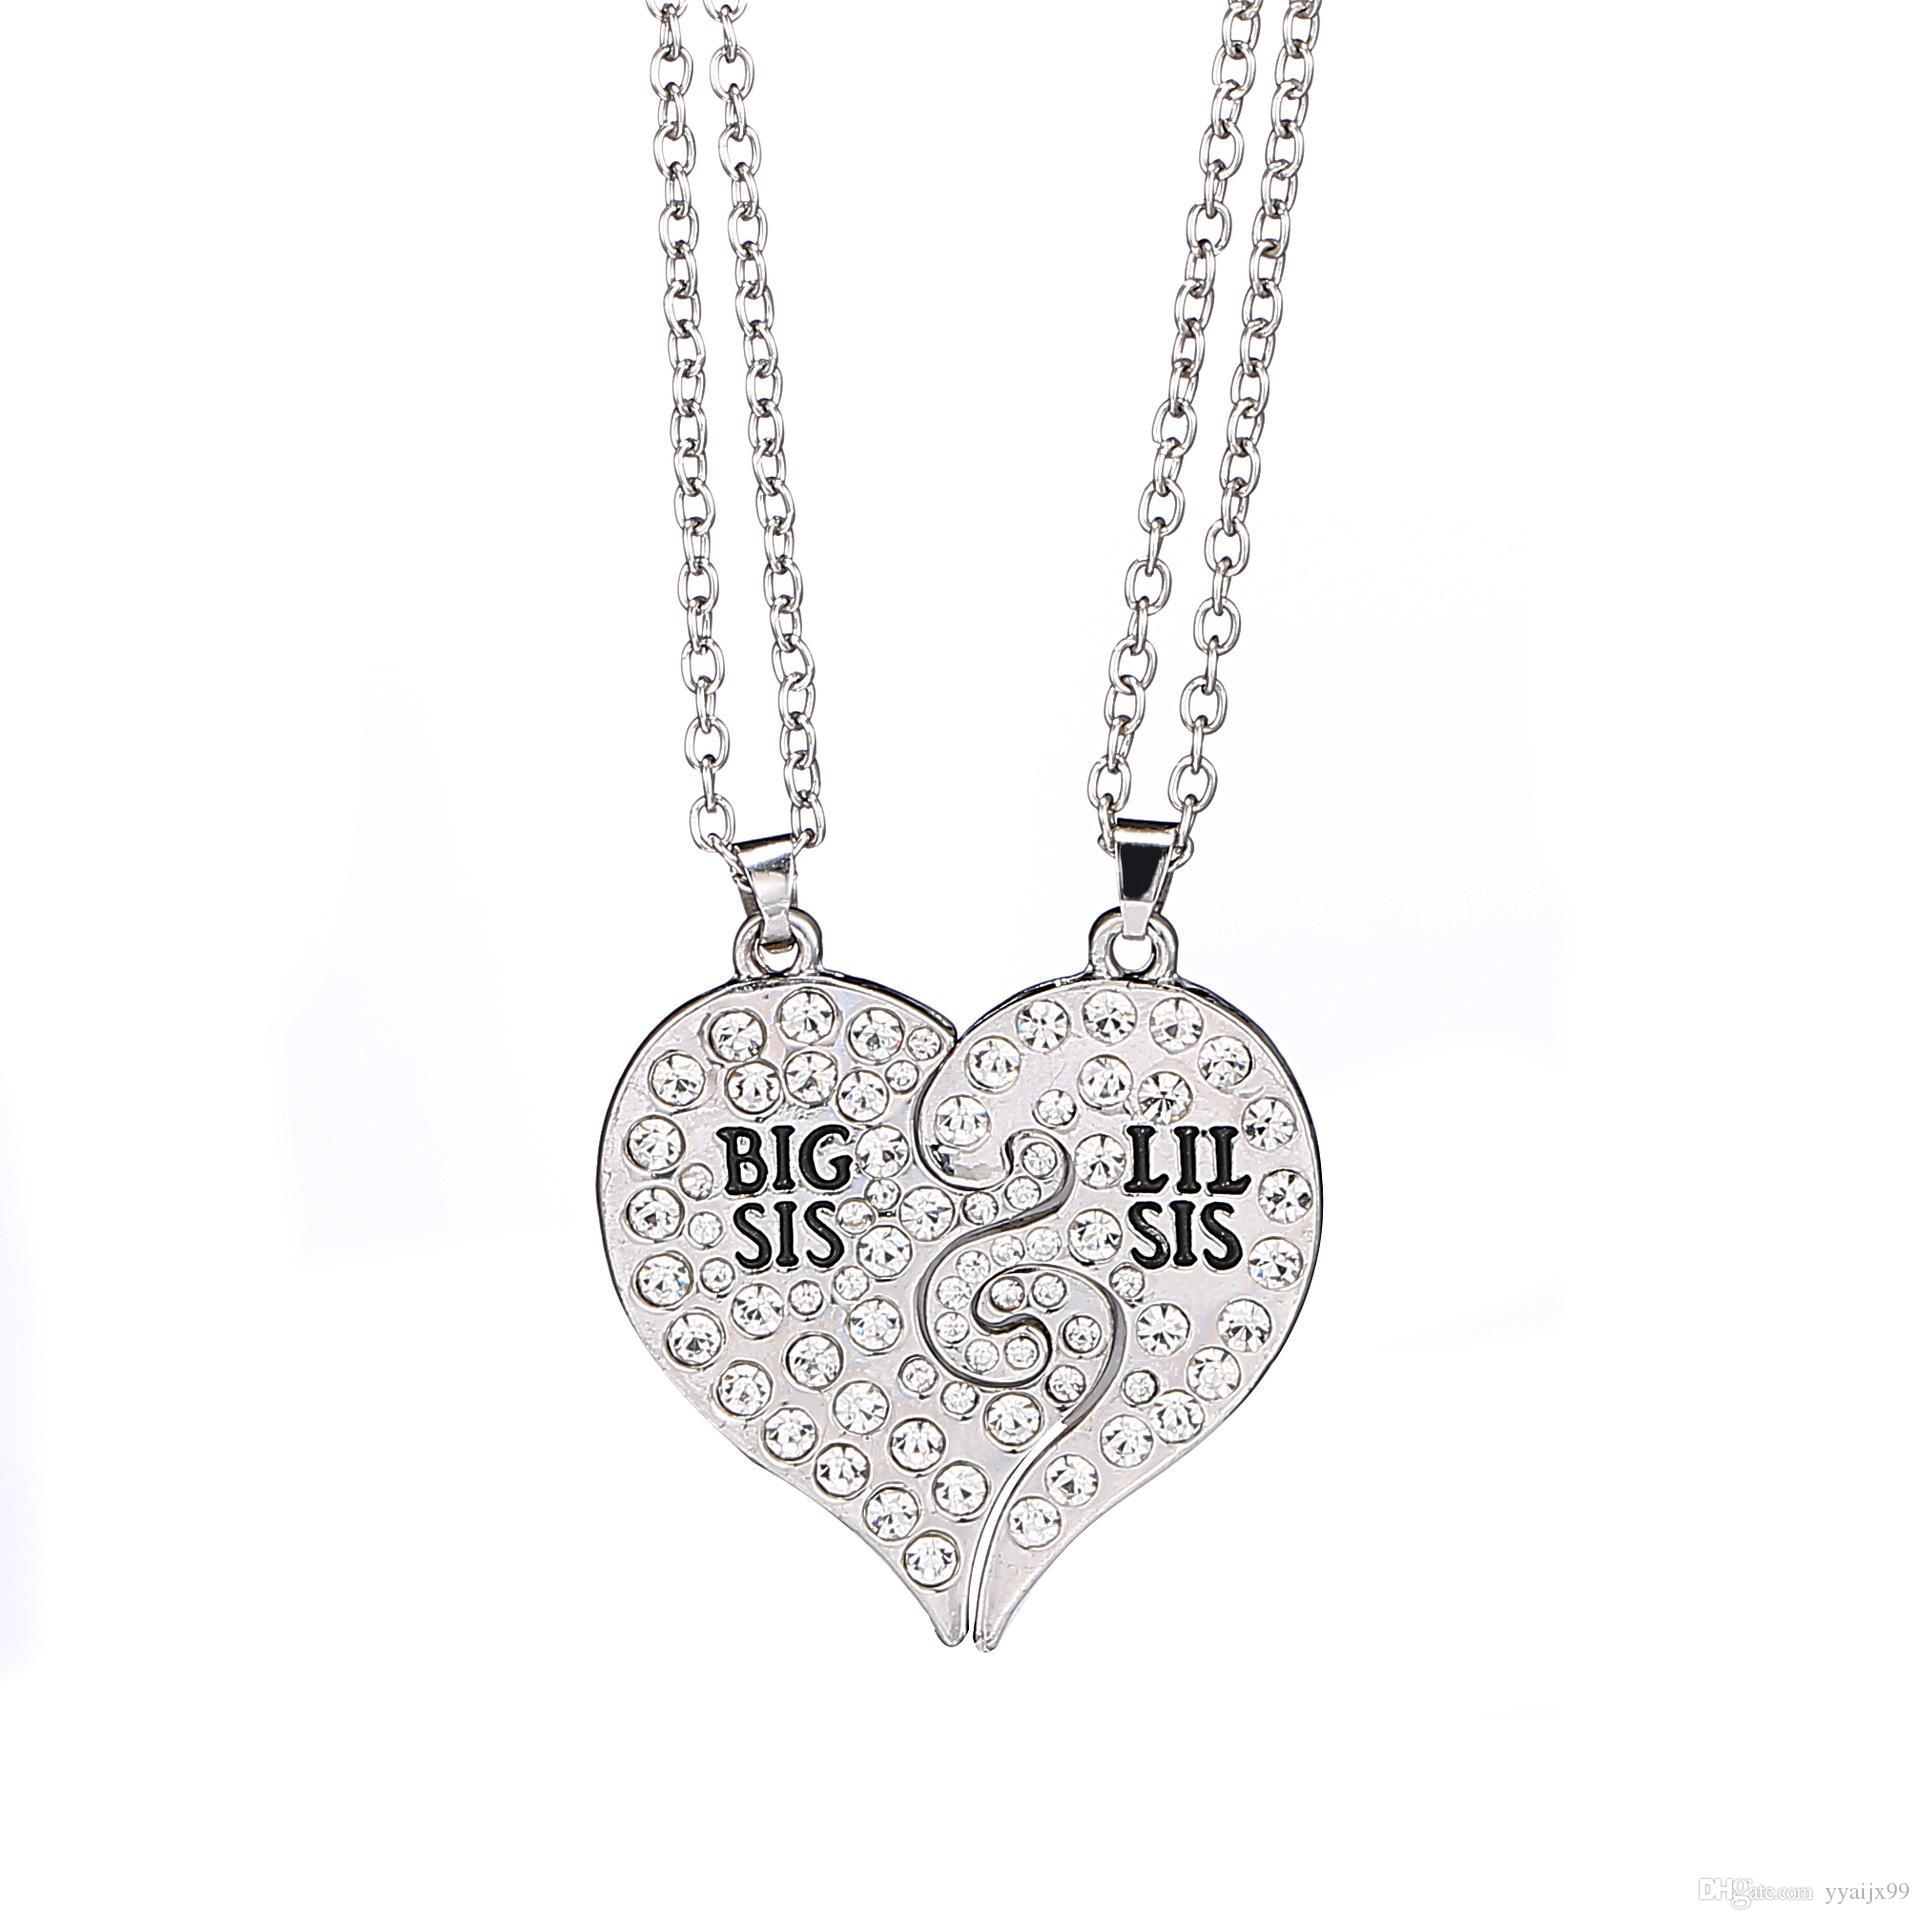 01c00596767f6 2017 new Big Sis Lil Sis Big Sister Little Sister BFF Best Friends Forever  Gold silver Broken Heart Rhinestone Necklace Sister Gift